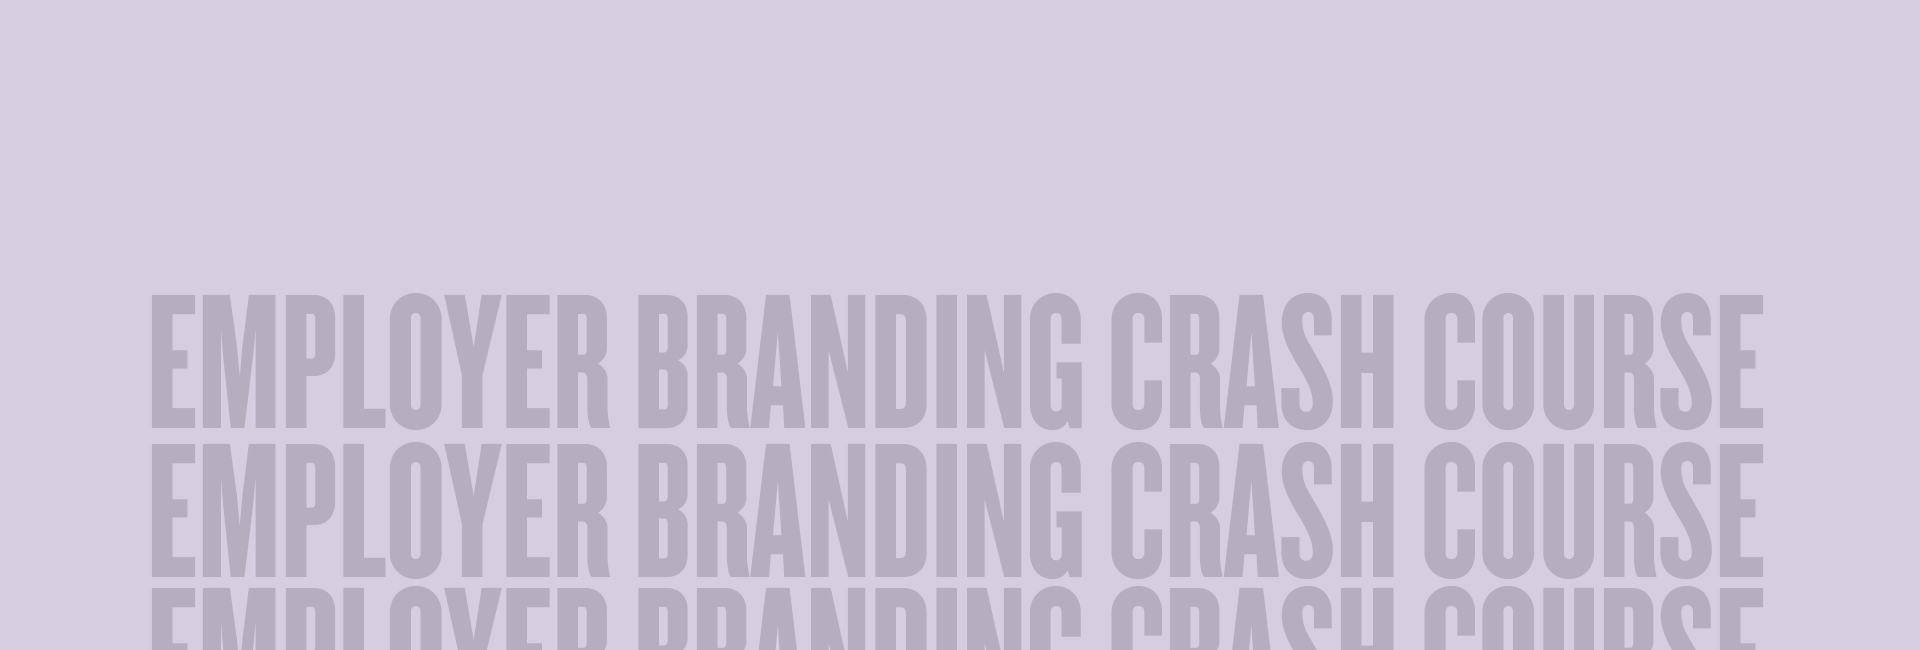 Employer Branding Crash Course - Try now for free!